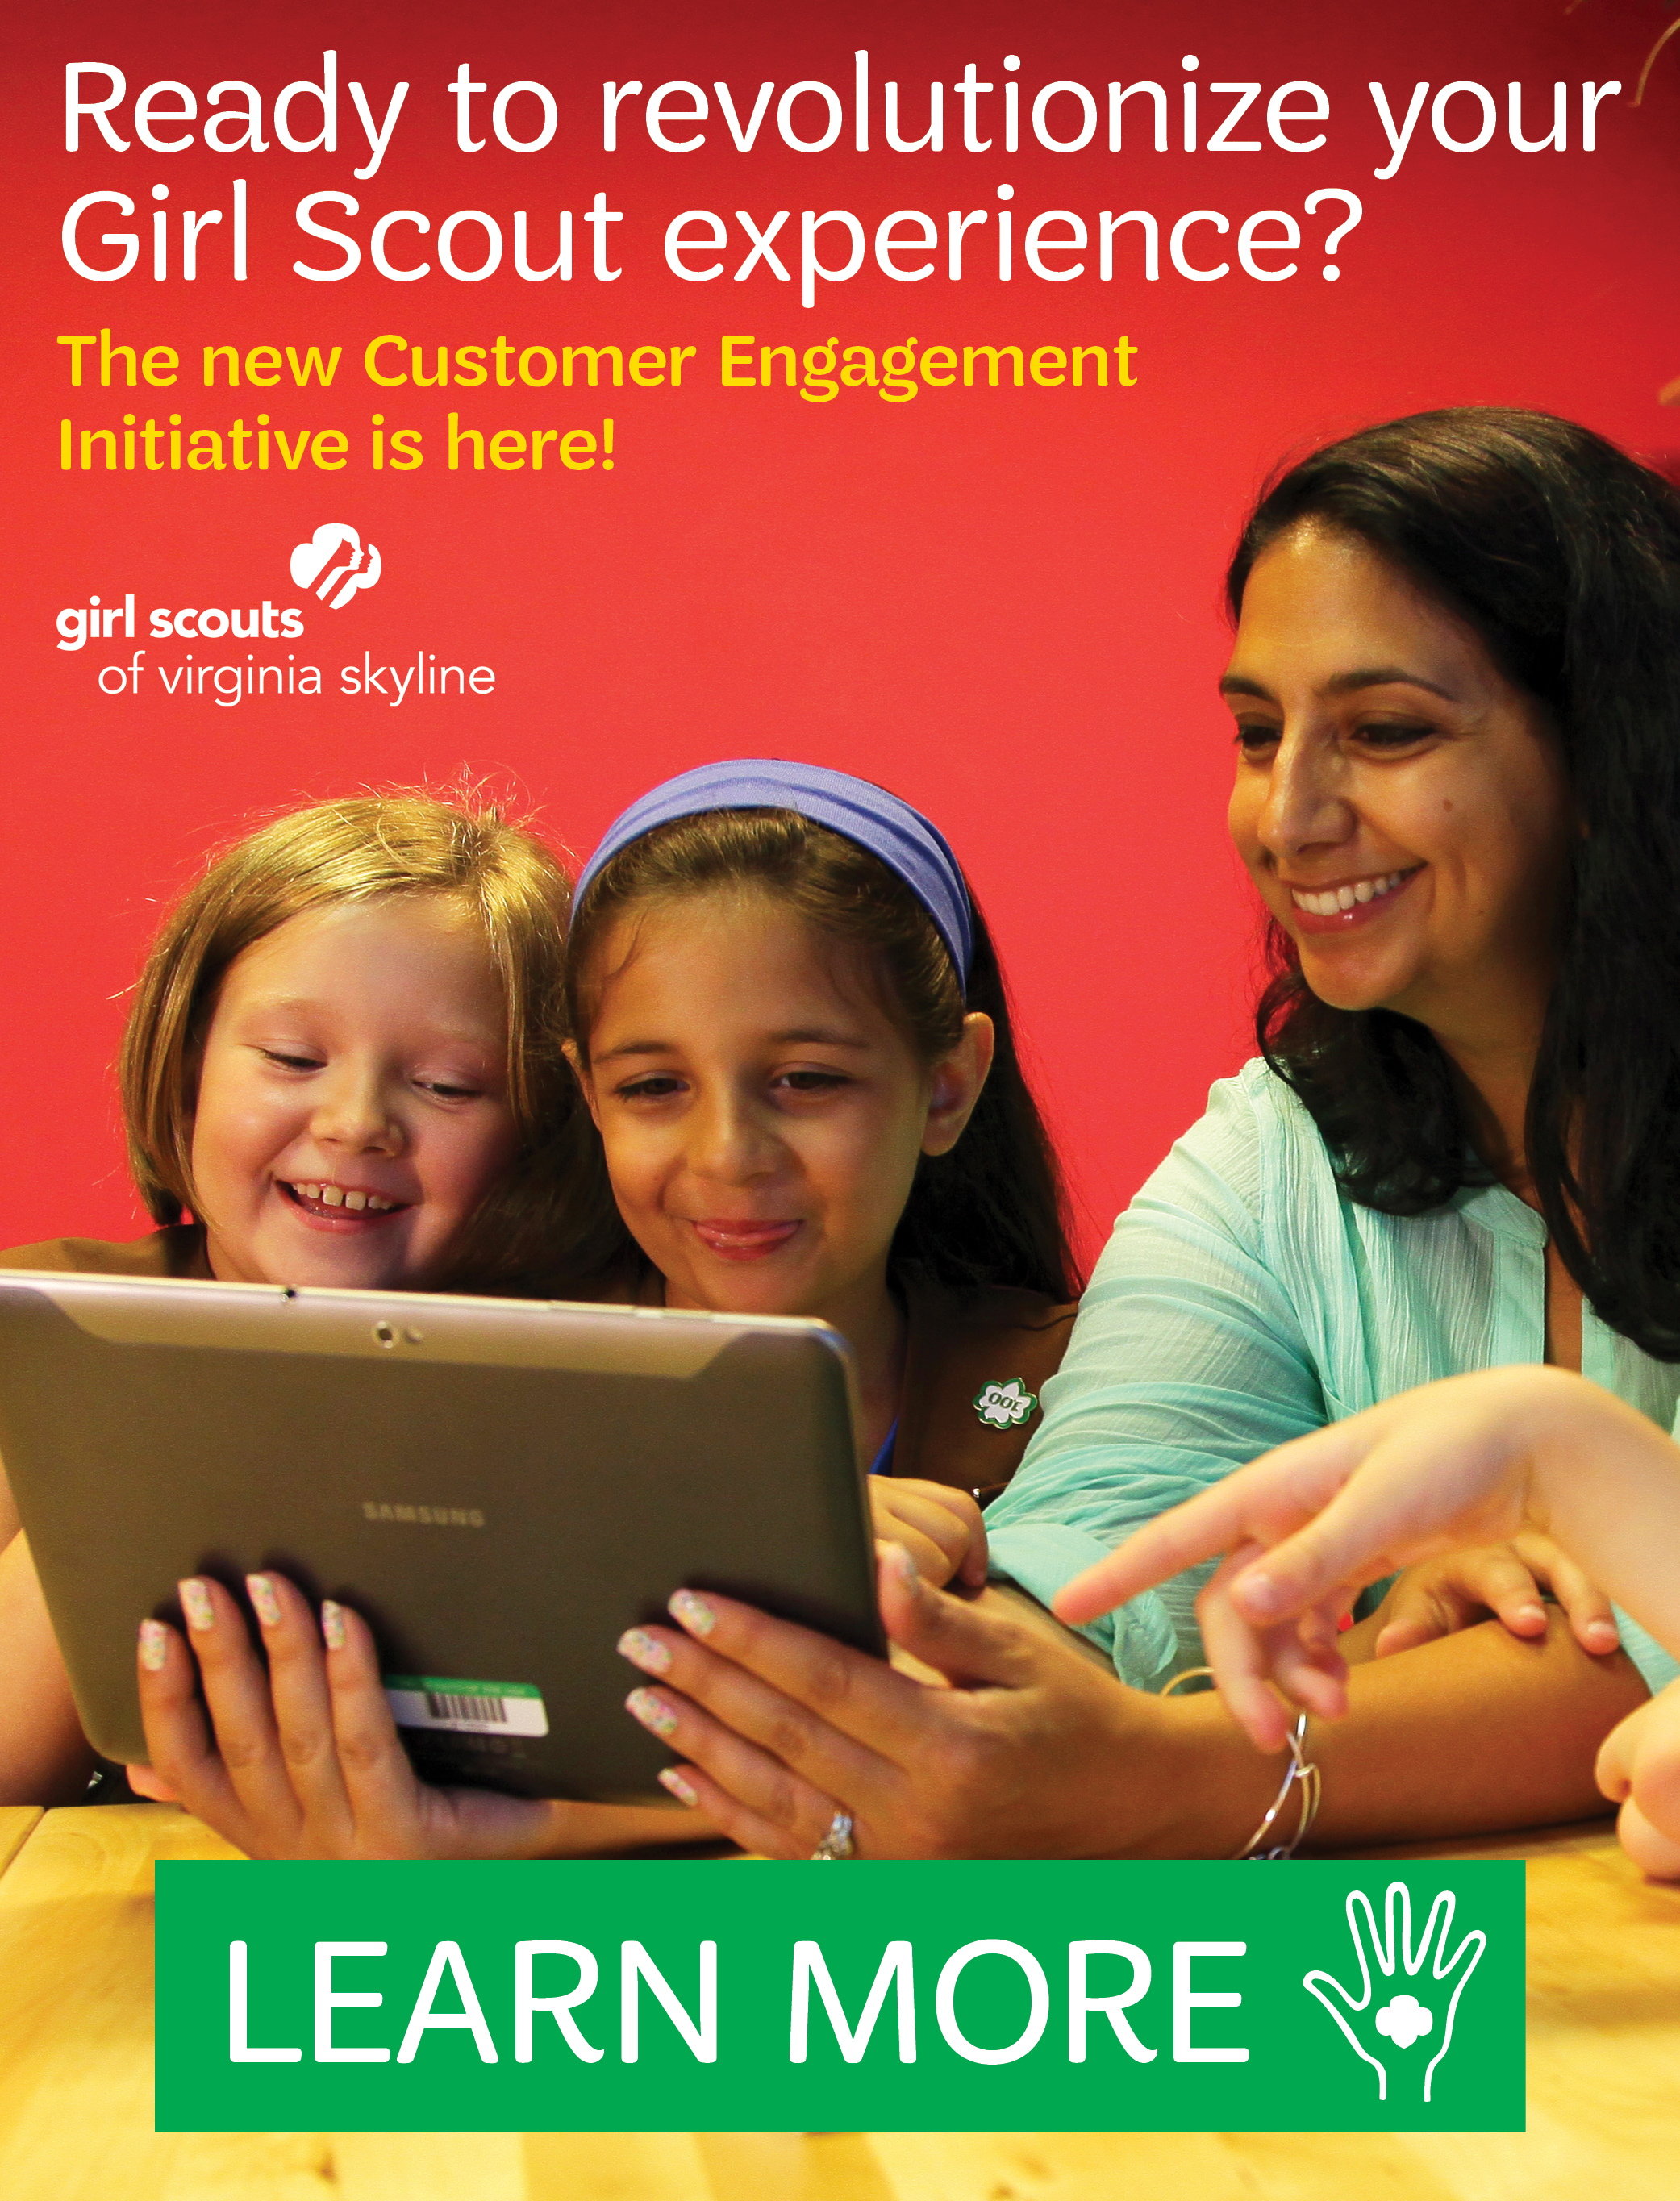 The Customer Engagement Initiative is here!